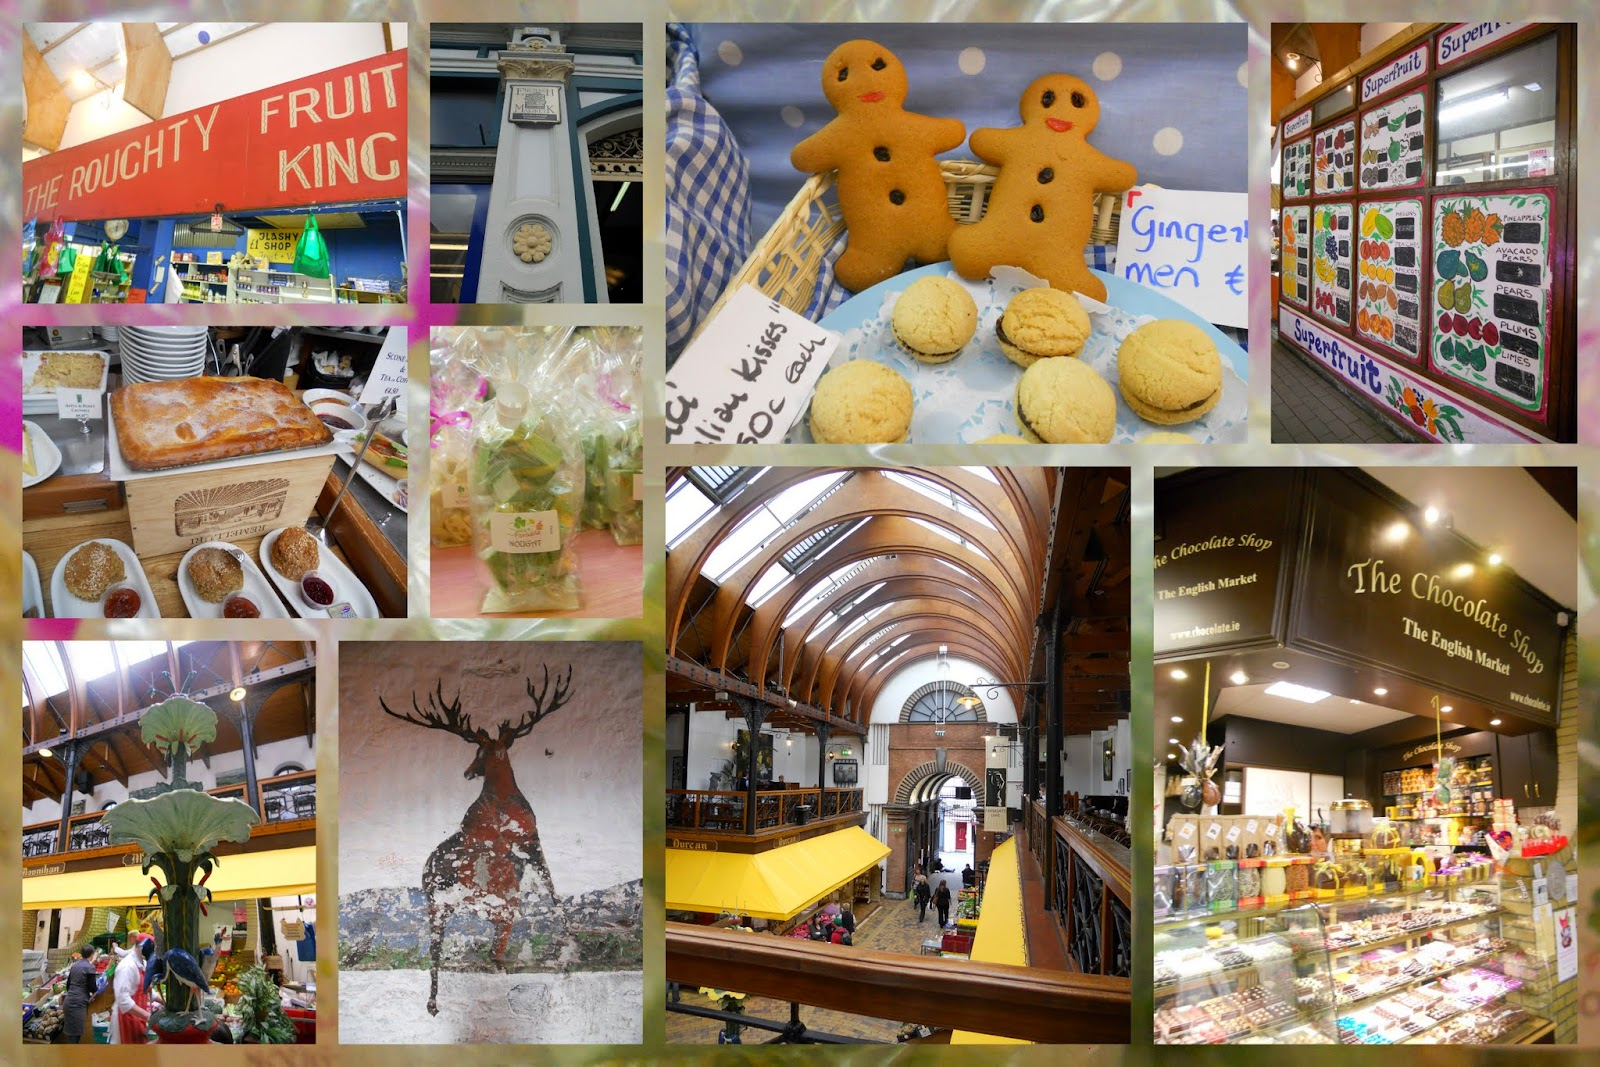 The Best Food Market in Ireland: The English Market in Cork